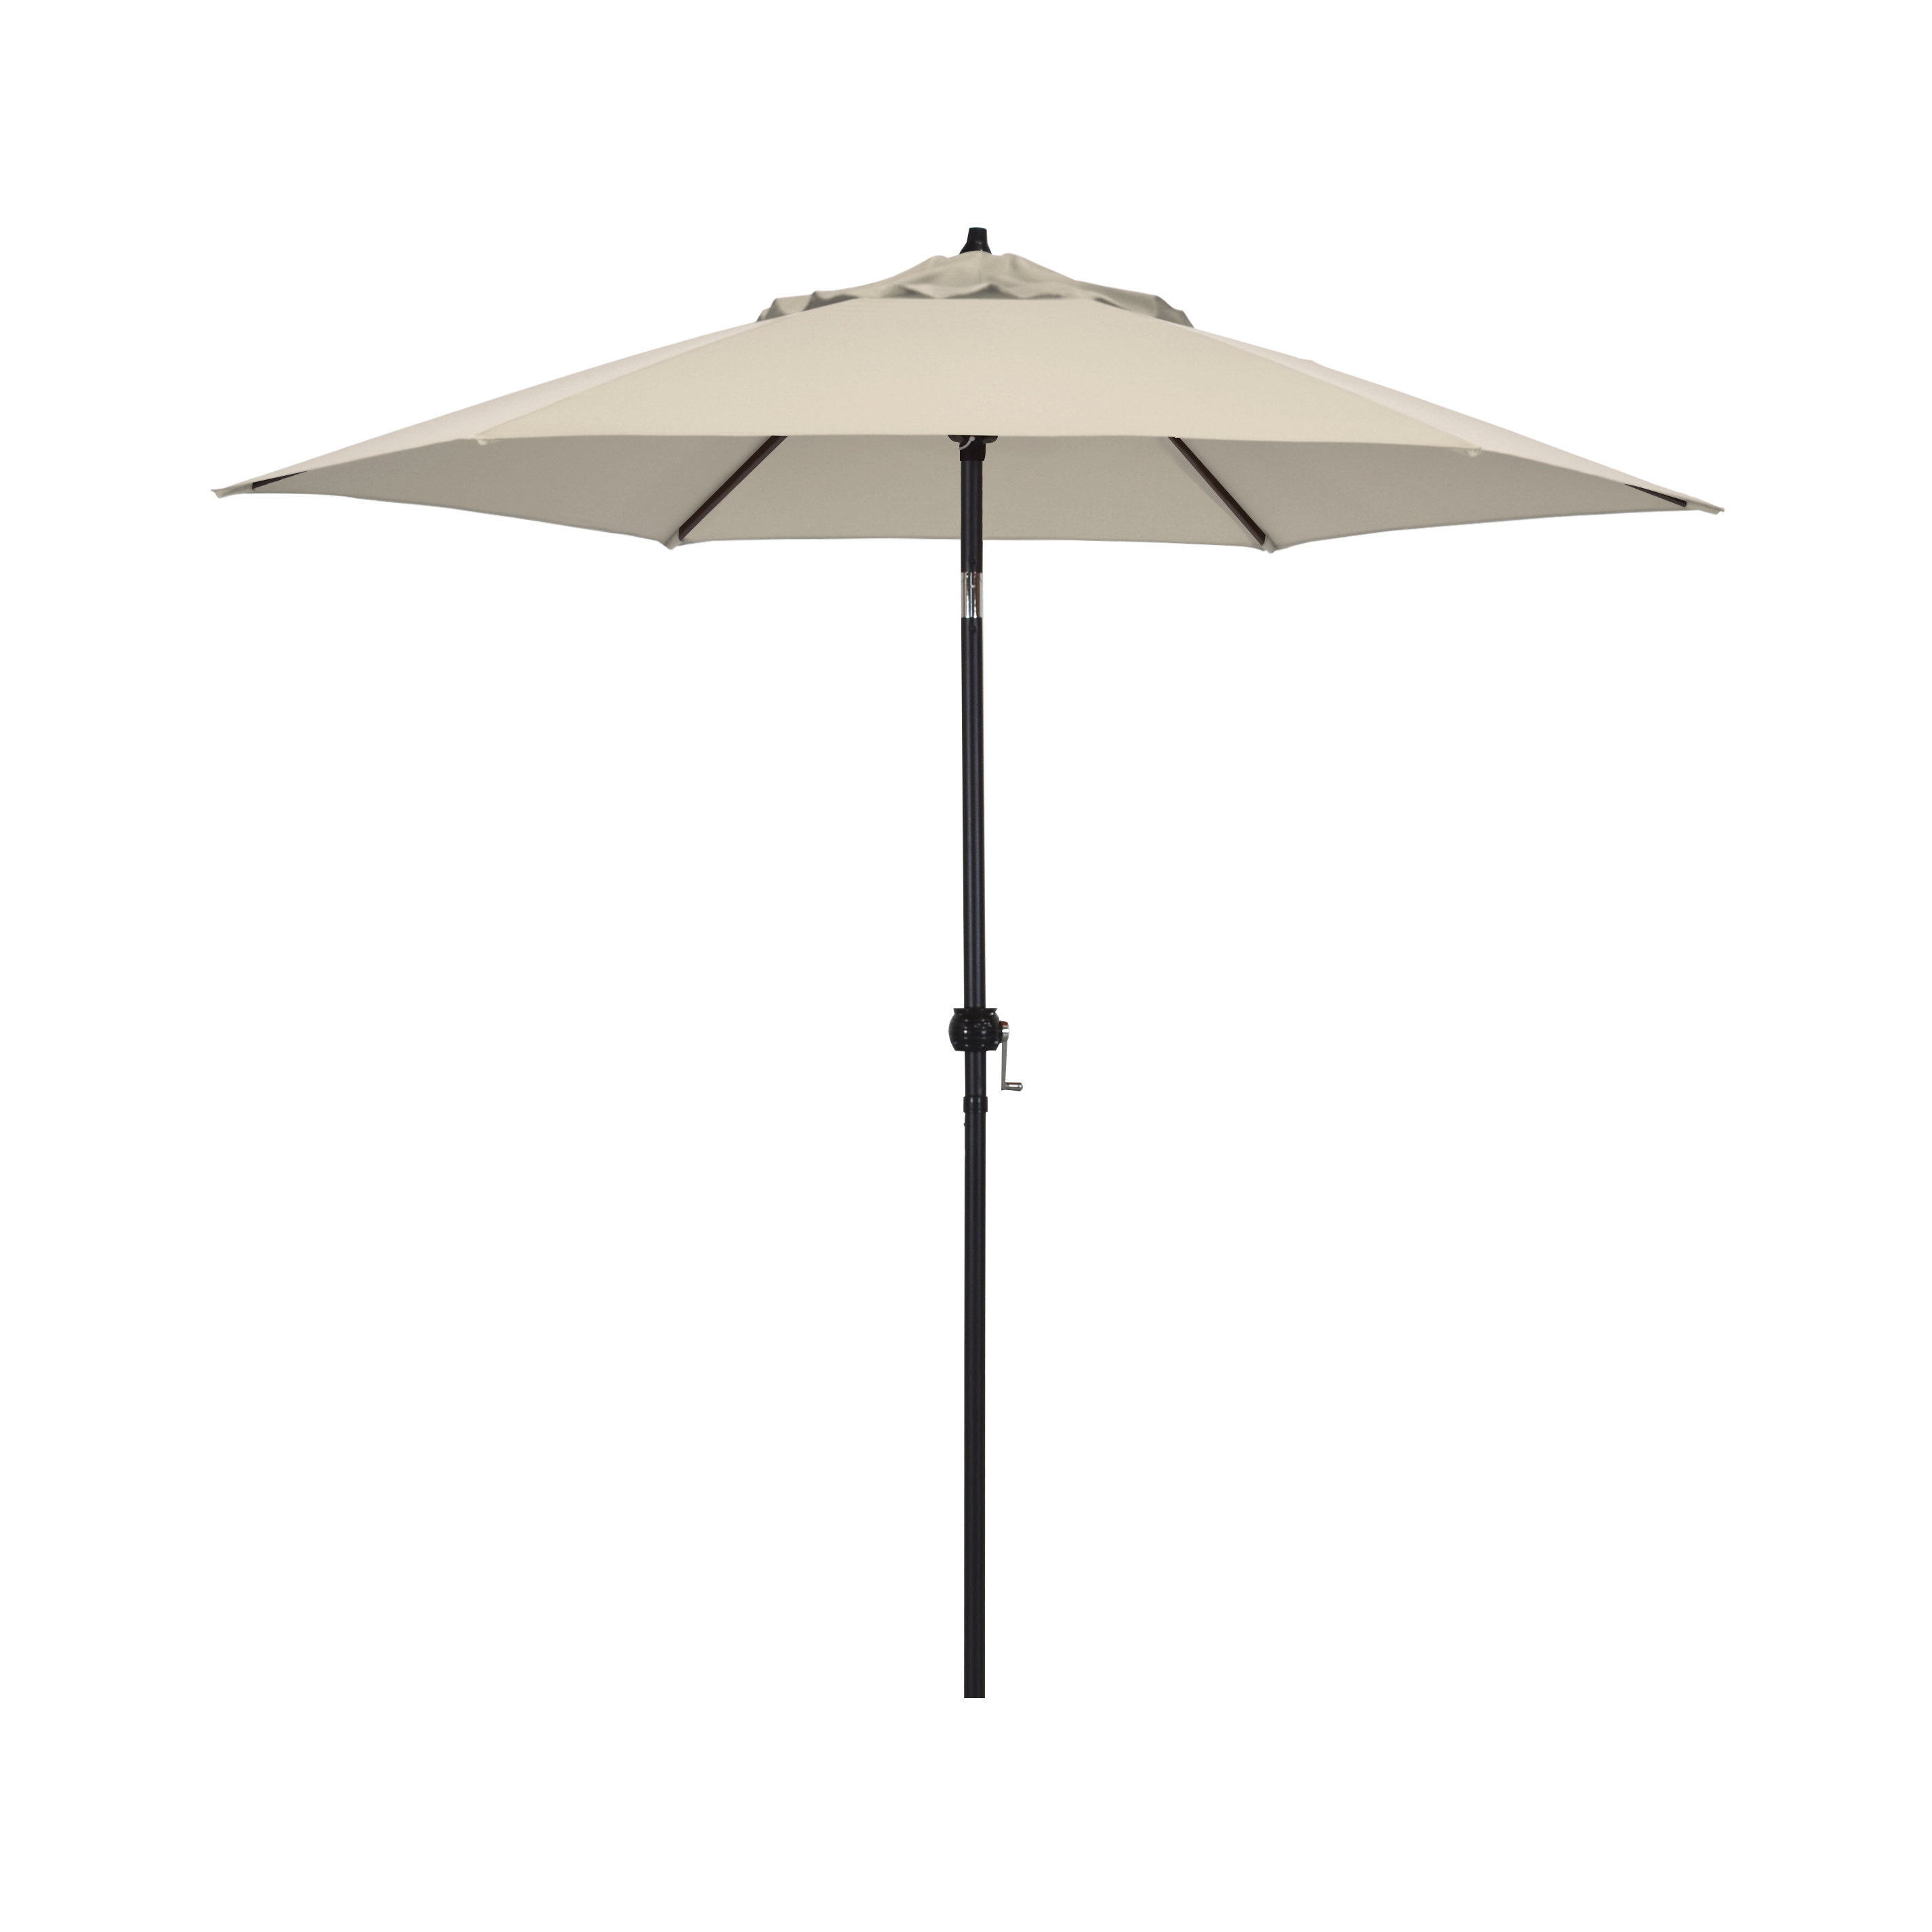 Kearney 9' Market Umbrella For Most Recently Released Ryant Market Umbrellas (View 6 of 20)